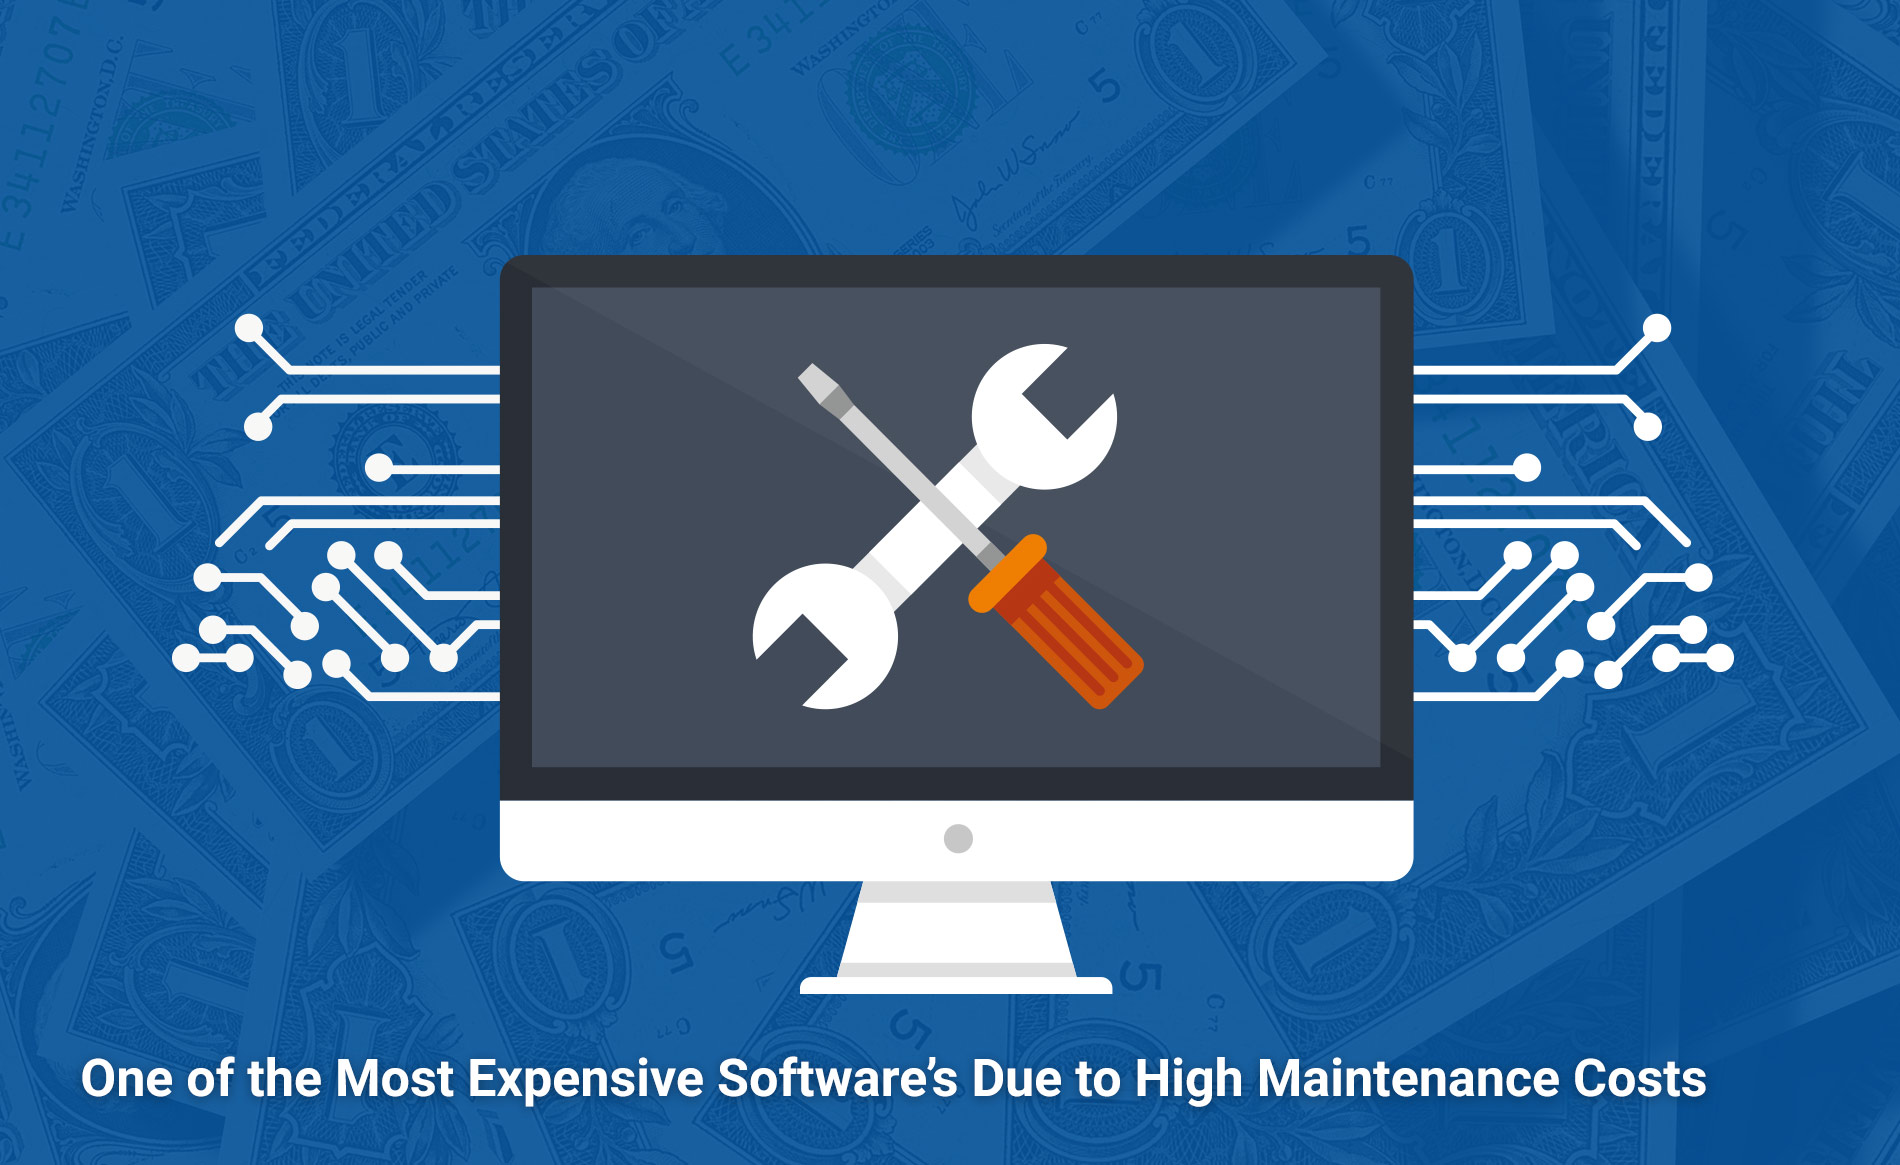 One of the Most Expensive Software's Due to High Maintenance Costs